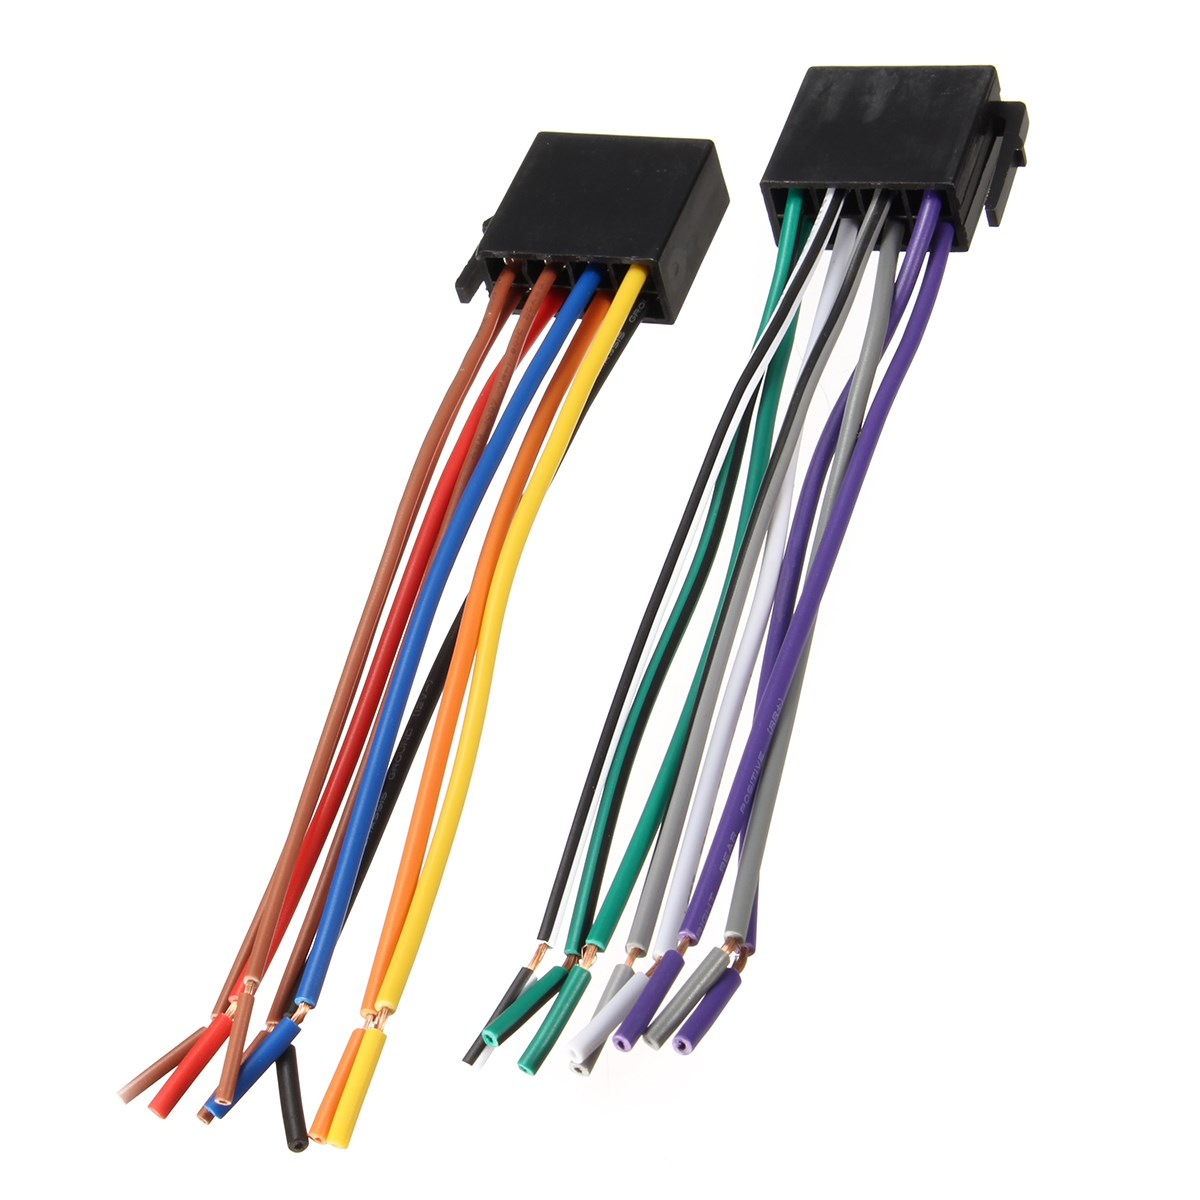 Universal Wire Harness Adapter Connector Cable Radio Wiring Connector Plug for Auto Car Stereo System universal wire harness adapter connector cable radio wiring universal car stereo wiring harness at bayanpartner.co